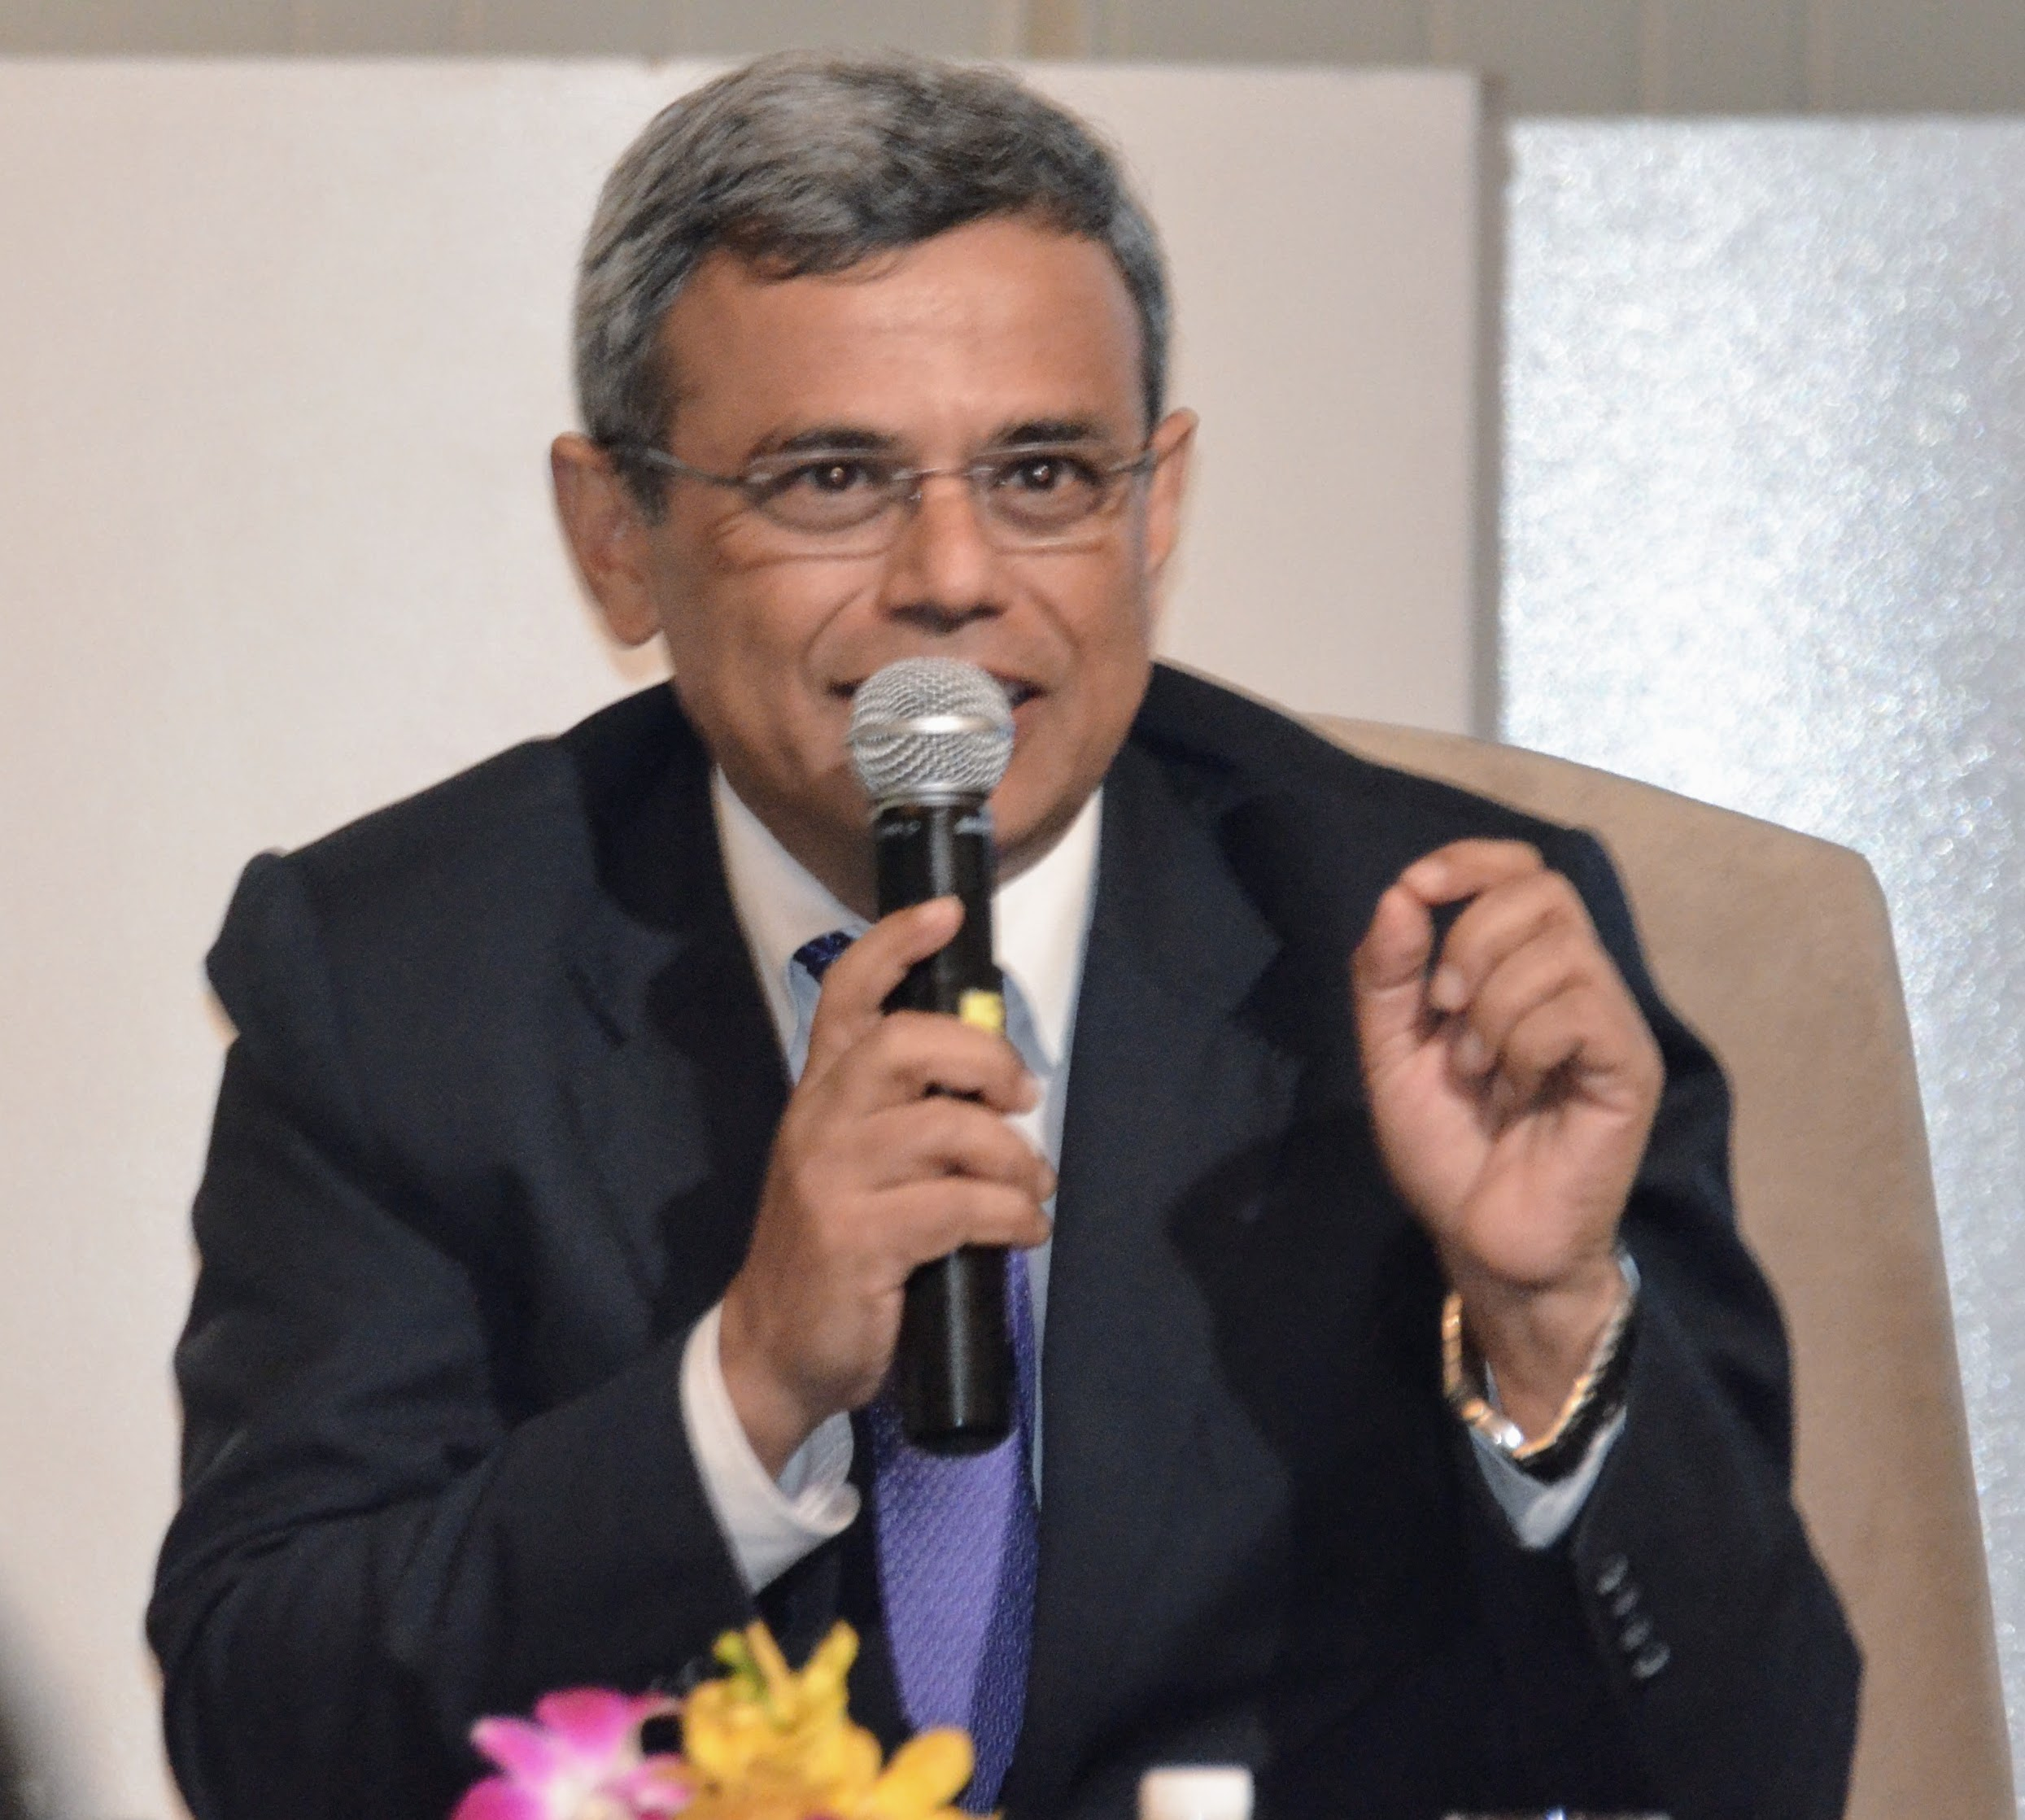 Jawed Ashraf, India's High Commissioner to Singapore. Photo: Connected to India